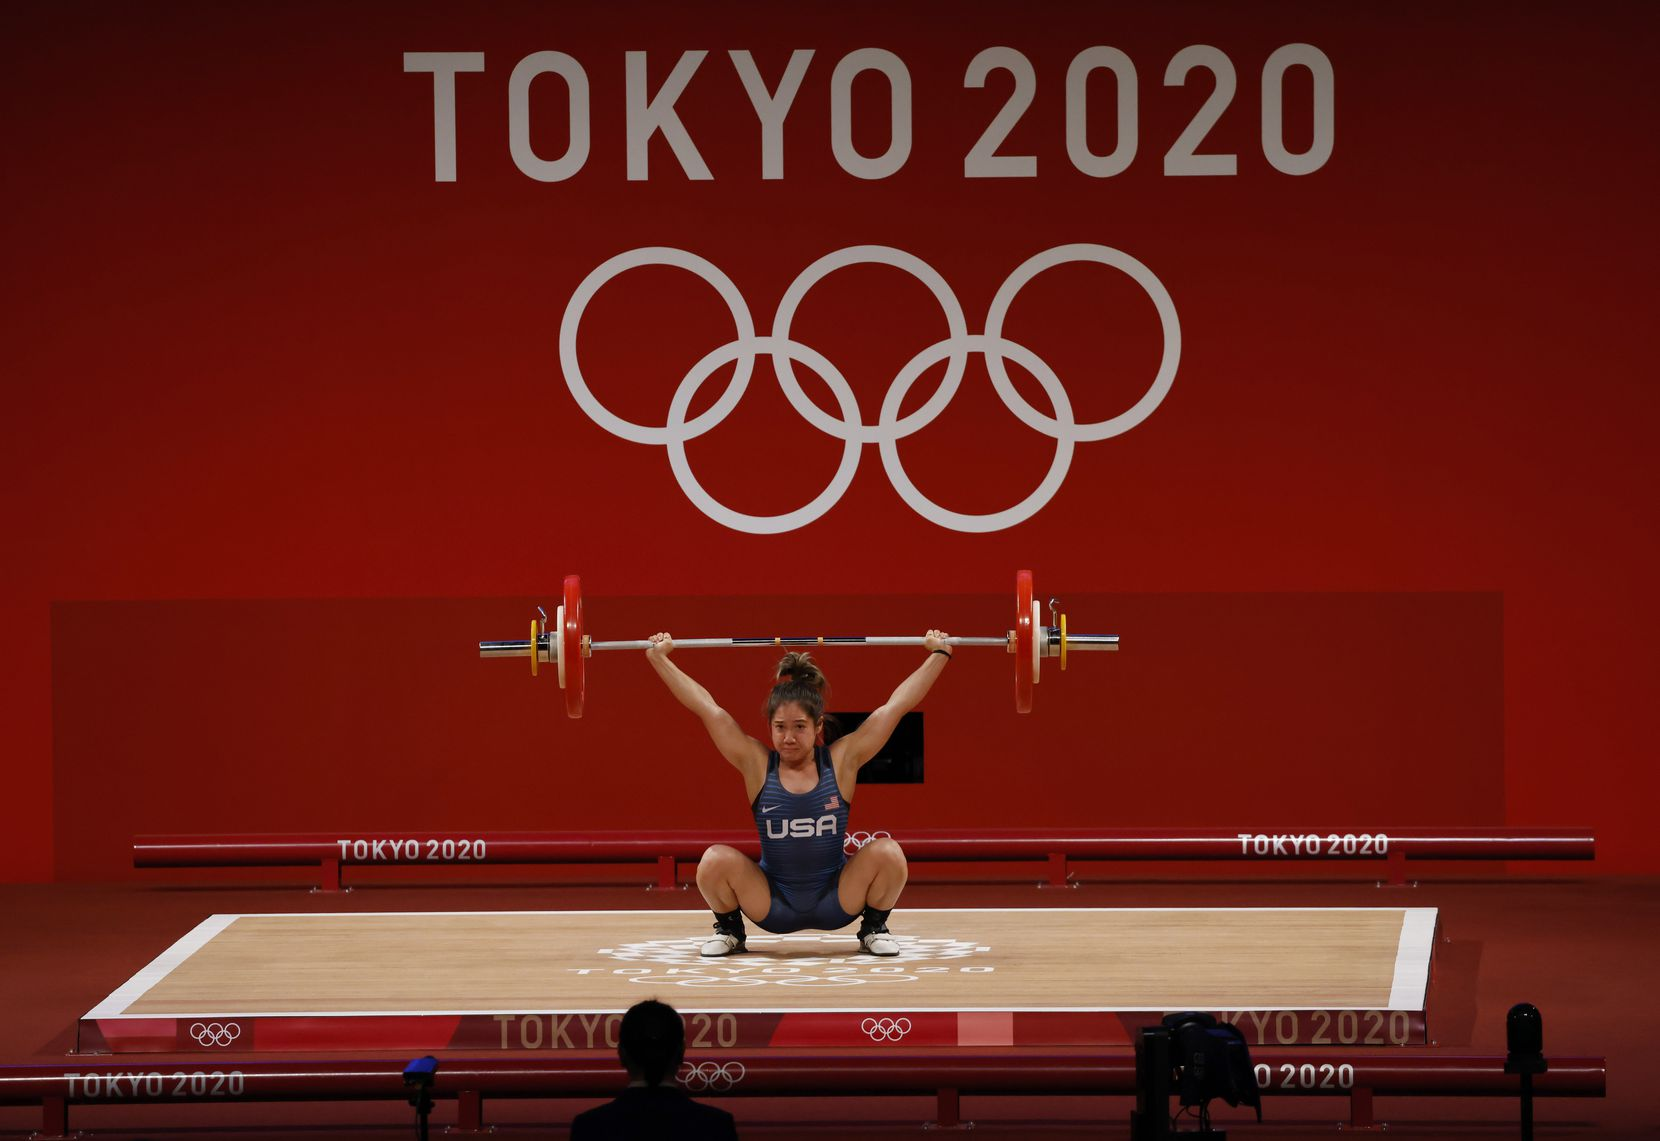 USA's Jourdan Delacruz competes in the second attempt of the snatch round lifting 86 kg during the women's 49 kg weightlifting final  during the postponed 2020 Tokyo Olympics at Tokyo International Forum on Saturday, July 24, 2021, in Tokyo, Japan. (Vernon Bryant/The Dallas Morning News)